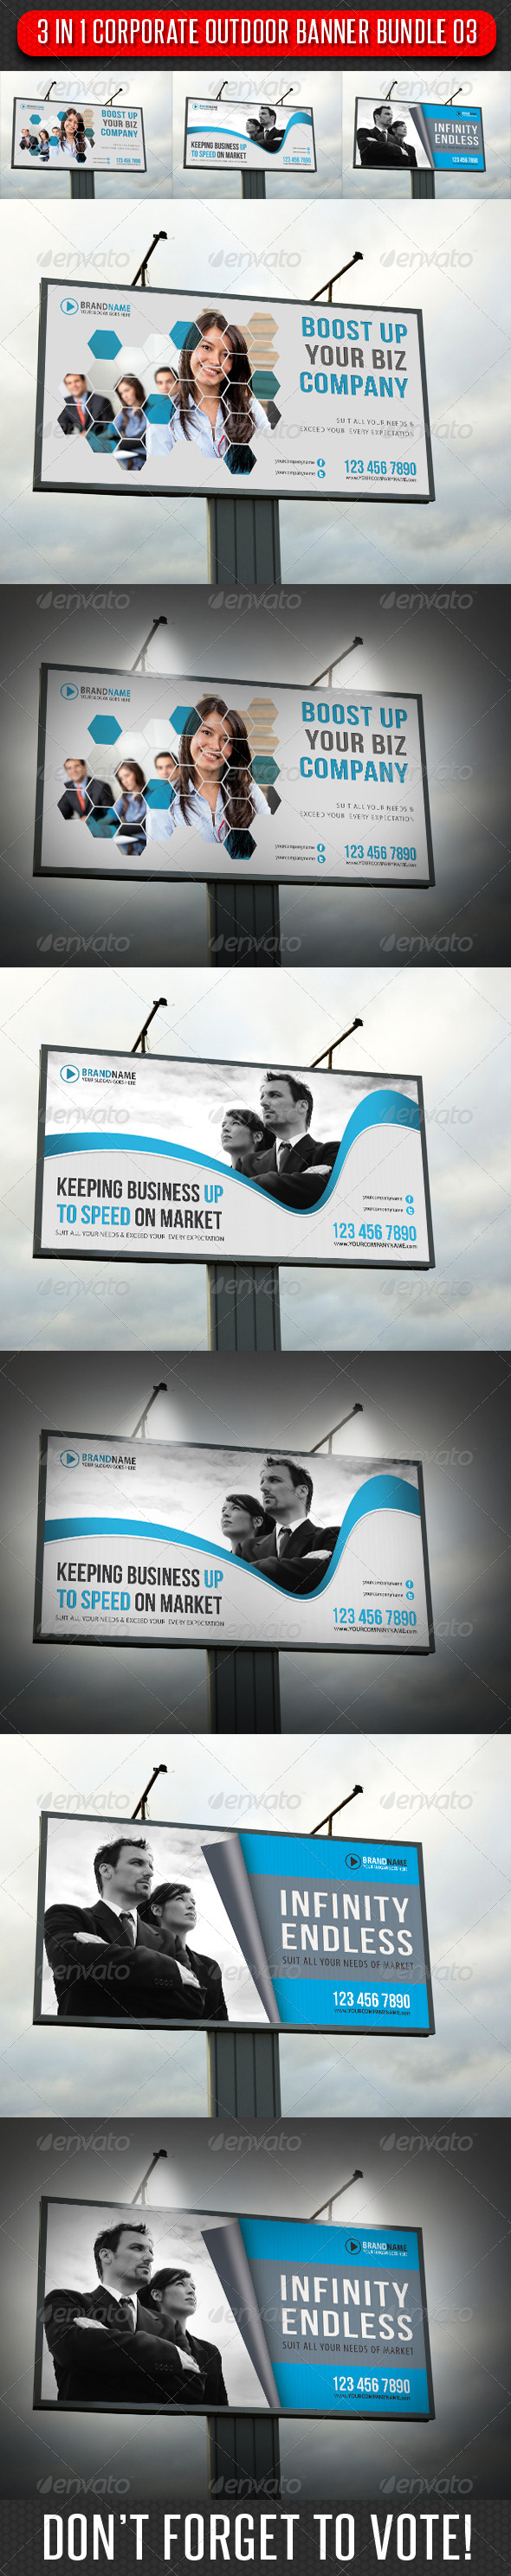 GraphicRiver 3 in 1 Corporate Outdoor Banner Bundle 03 6629384